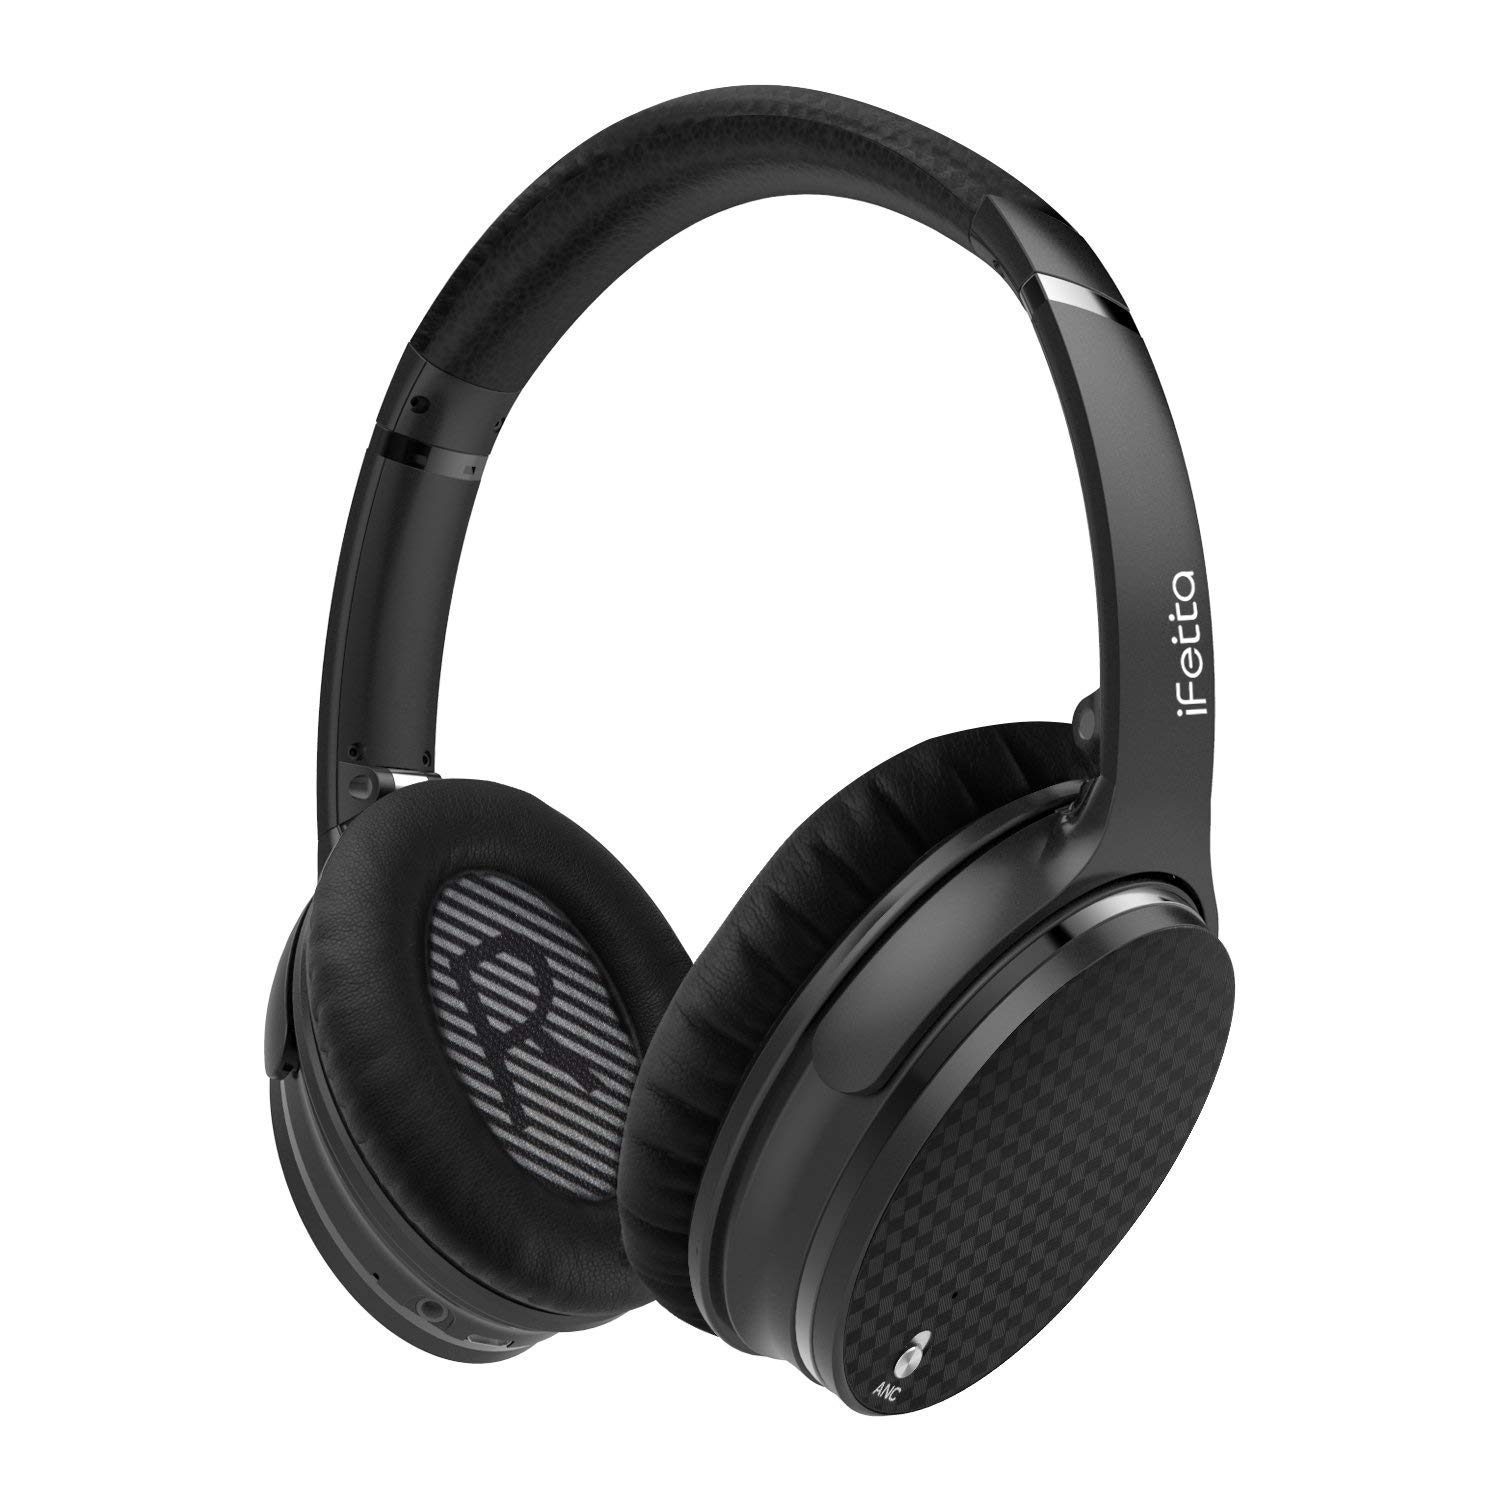 50% discount on Active Noise Cancelling Headphones, Ifecco